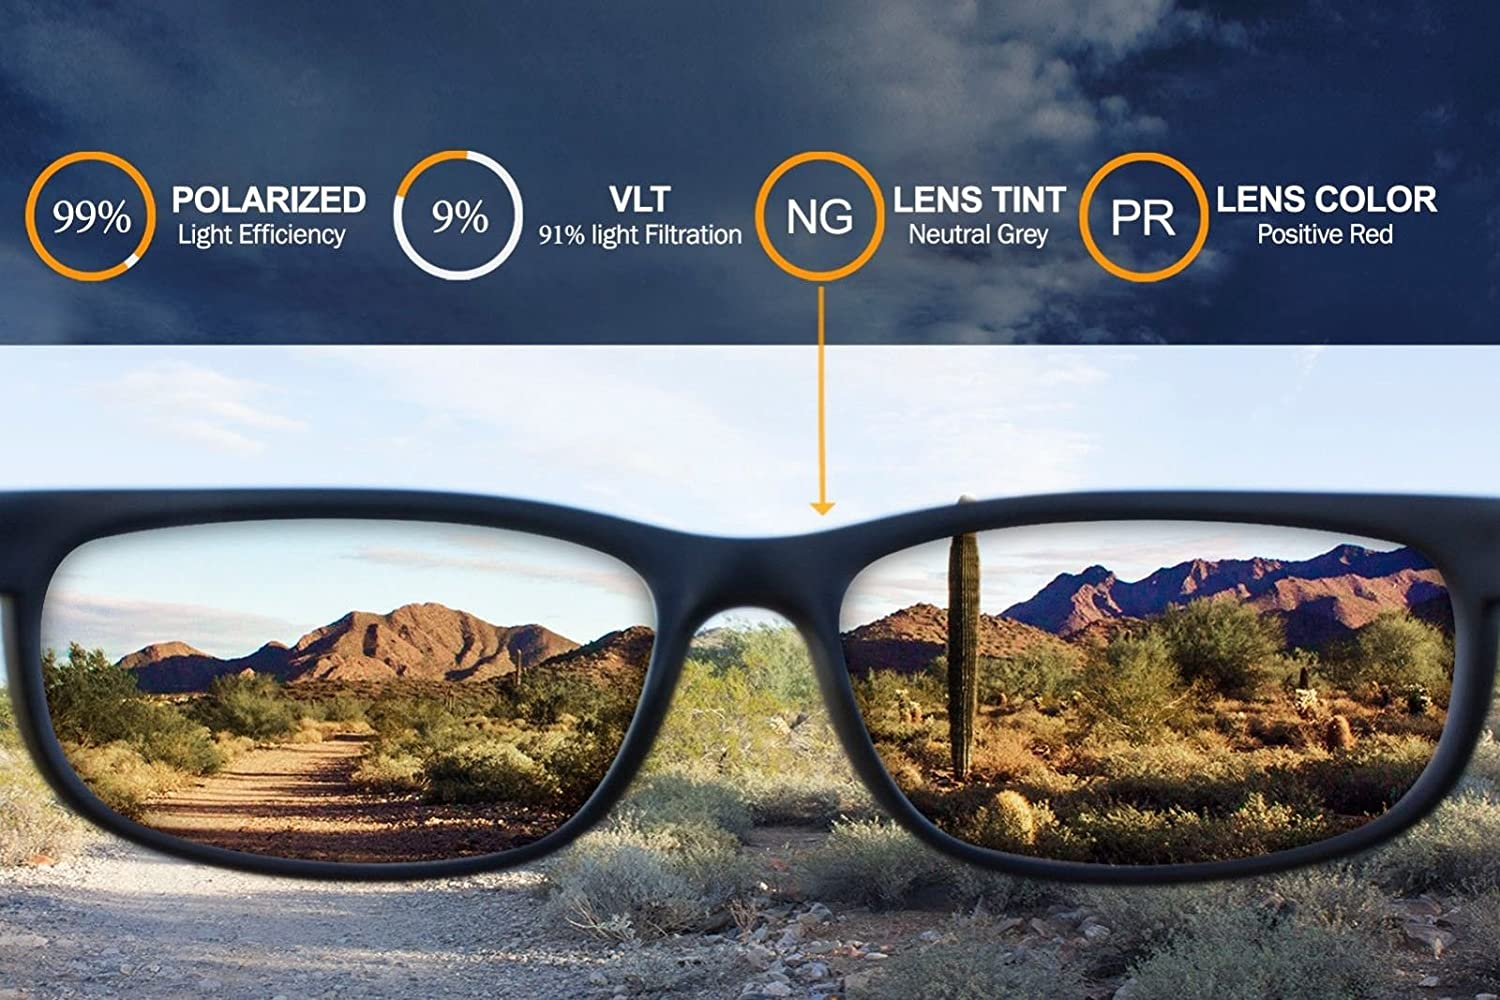 45177bb4c1 Amazon.com  Polarized Ikon Iridium Replacement Lenses for Oakley Fuel Cell  Sunglasses - + Red Mirror  Sports   Outdoors